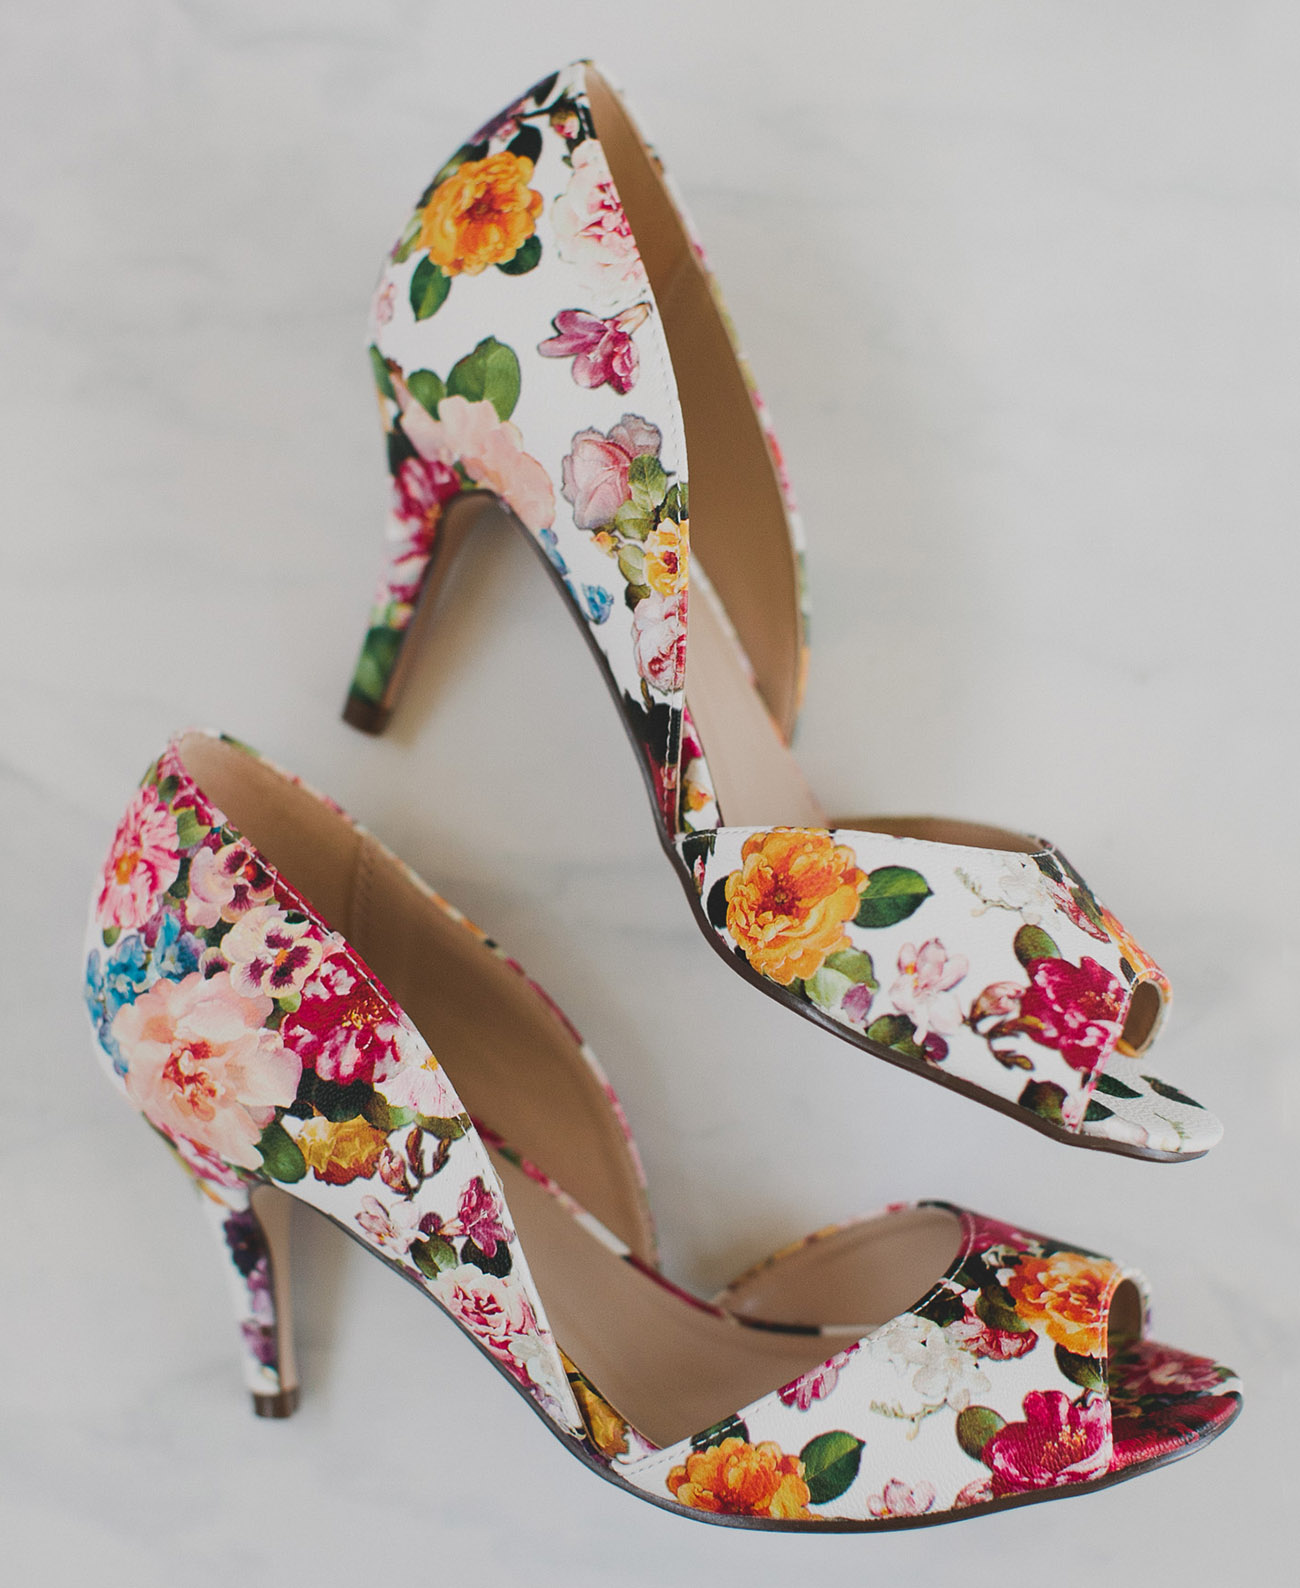 9a9a932d7ca8 How to Throw a Floral Bridal Shower with Modcloth - Green Wedding Shoes